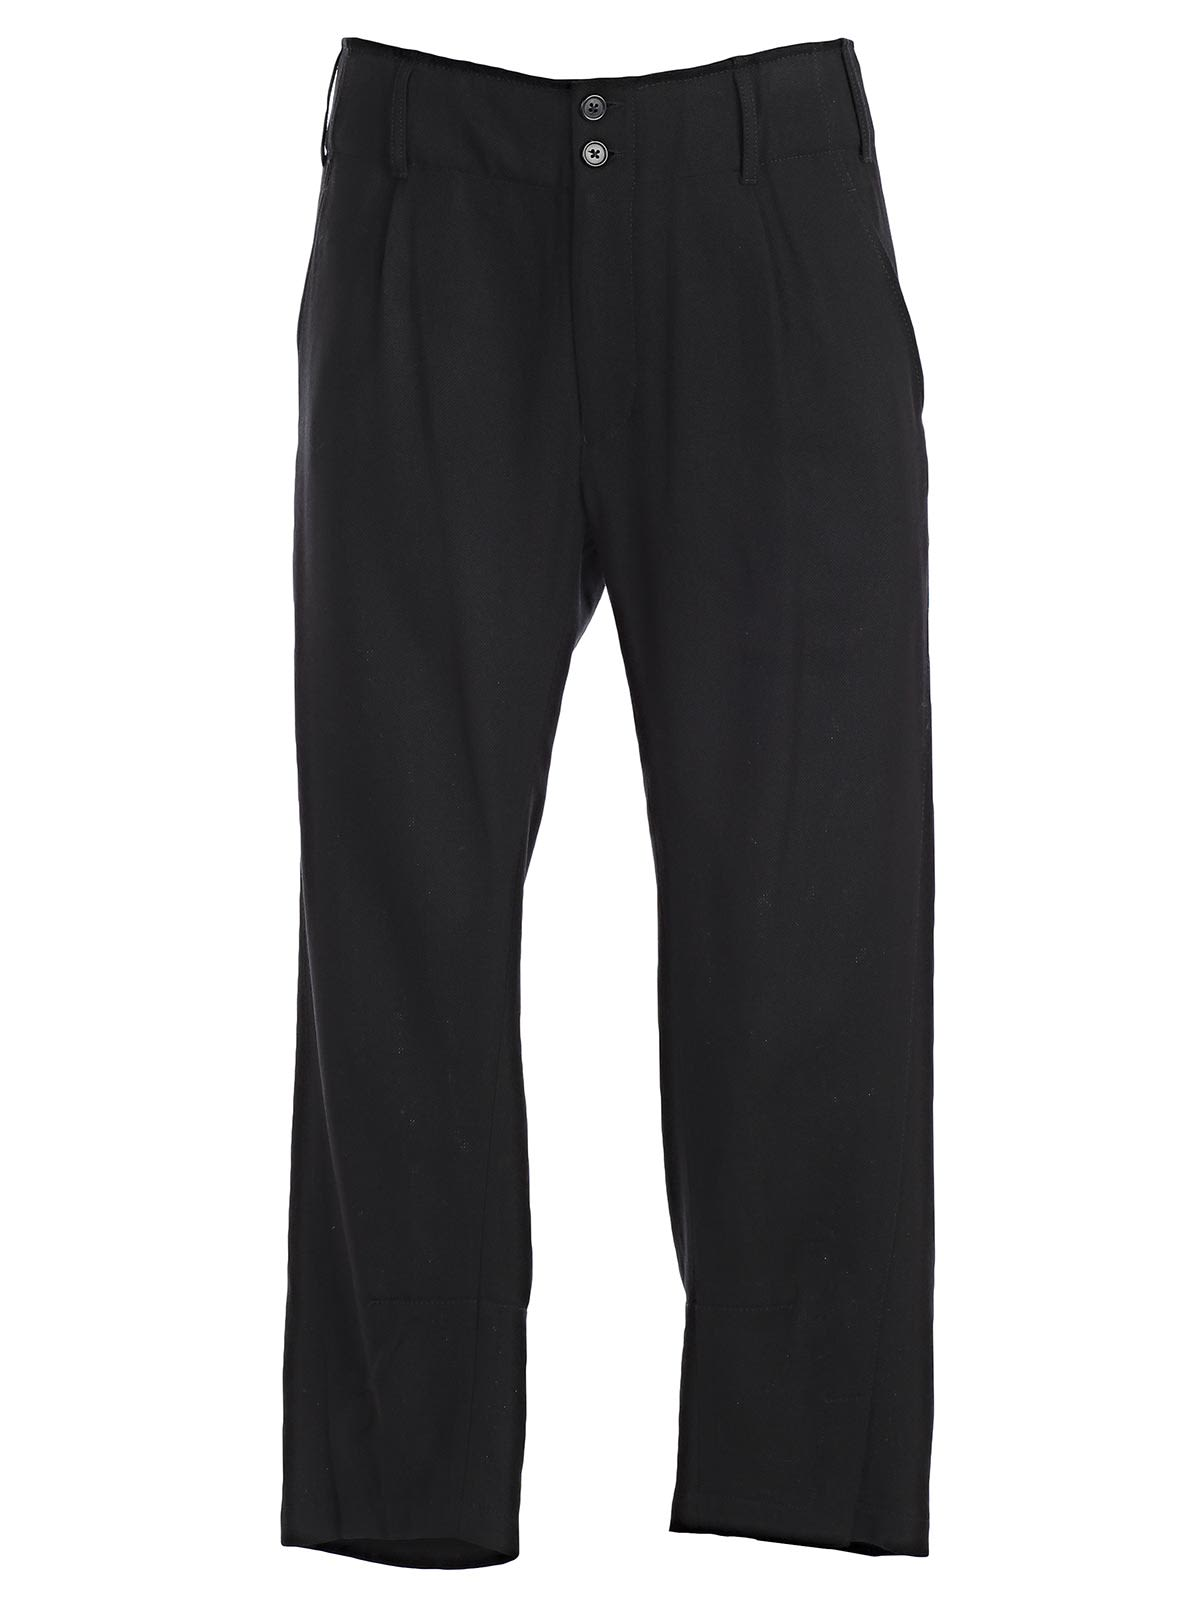 Ann Demeulemester Drop Crotch Trousers